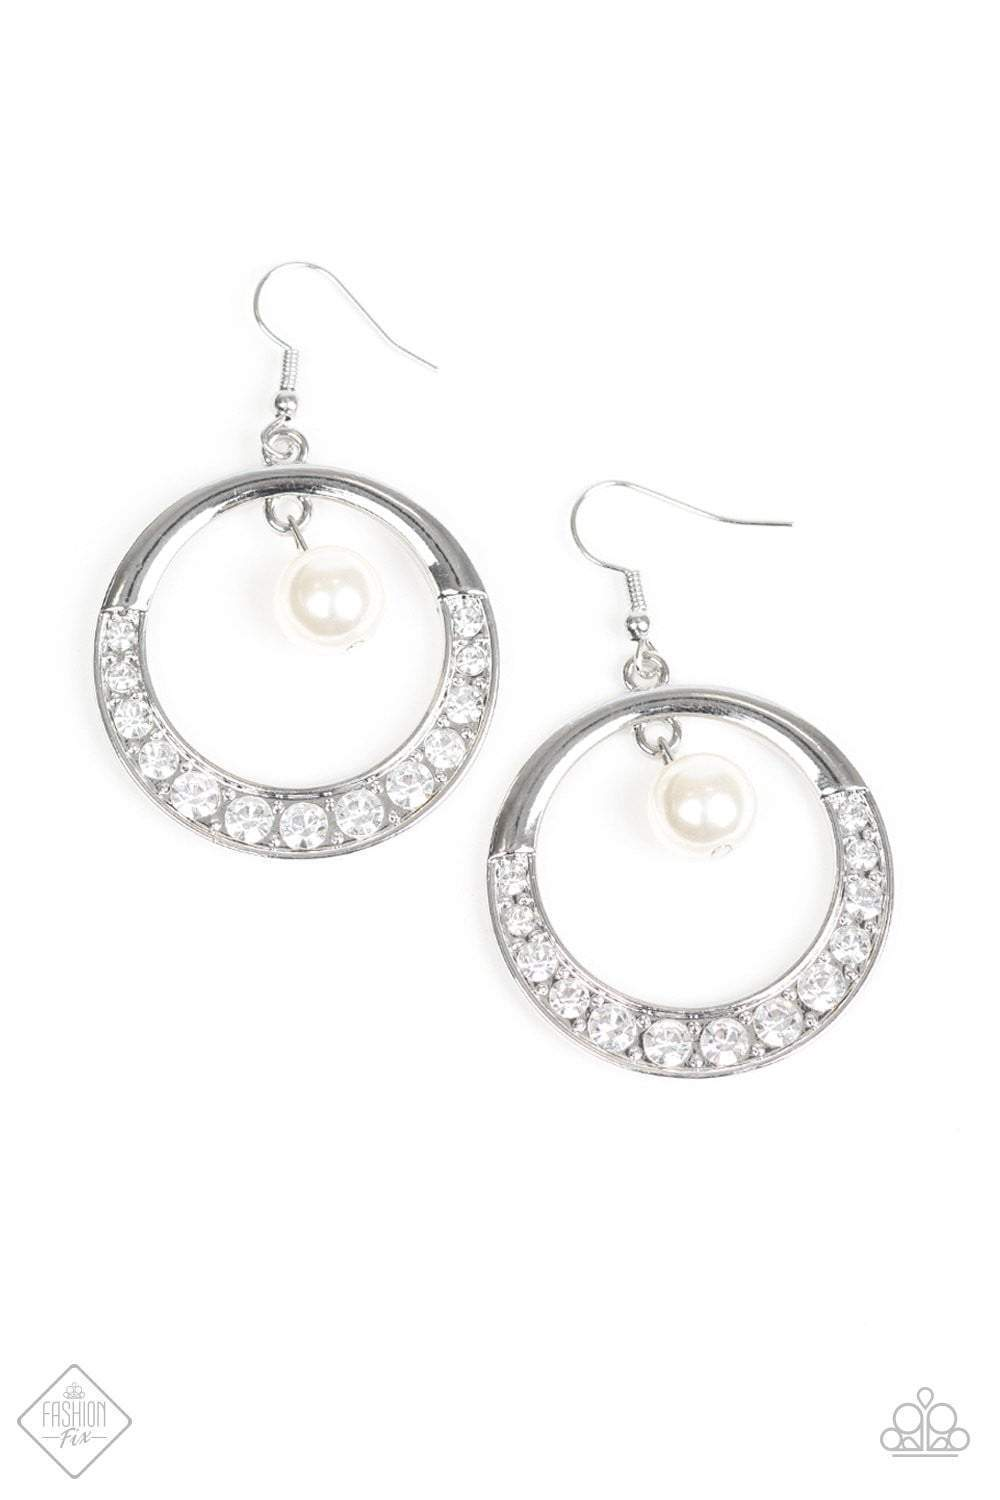 Paparazzi The Icon-ista - White Pearl White Rhinestone Silver Hoop Earrings - Bling It On Online